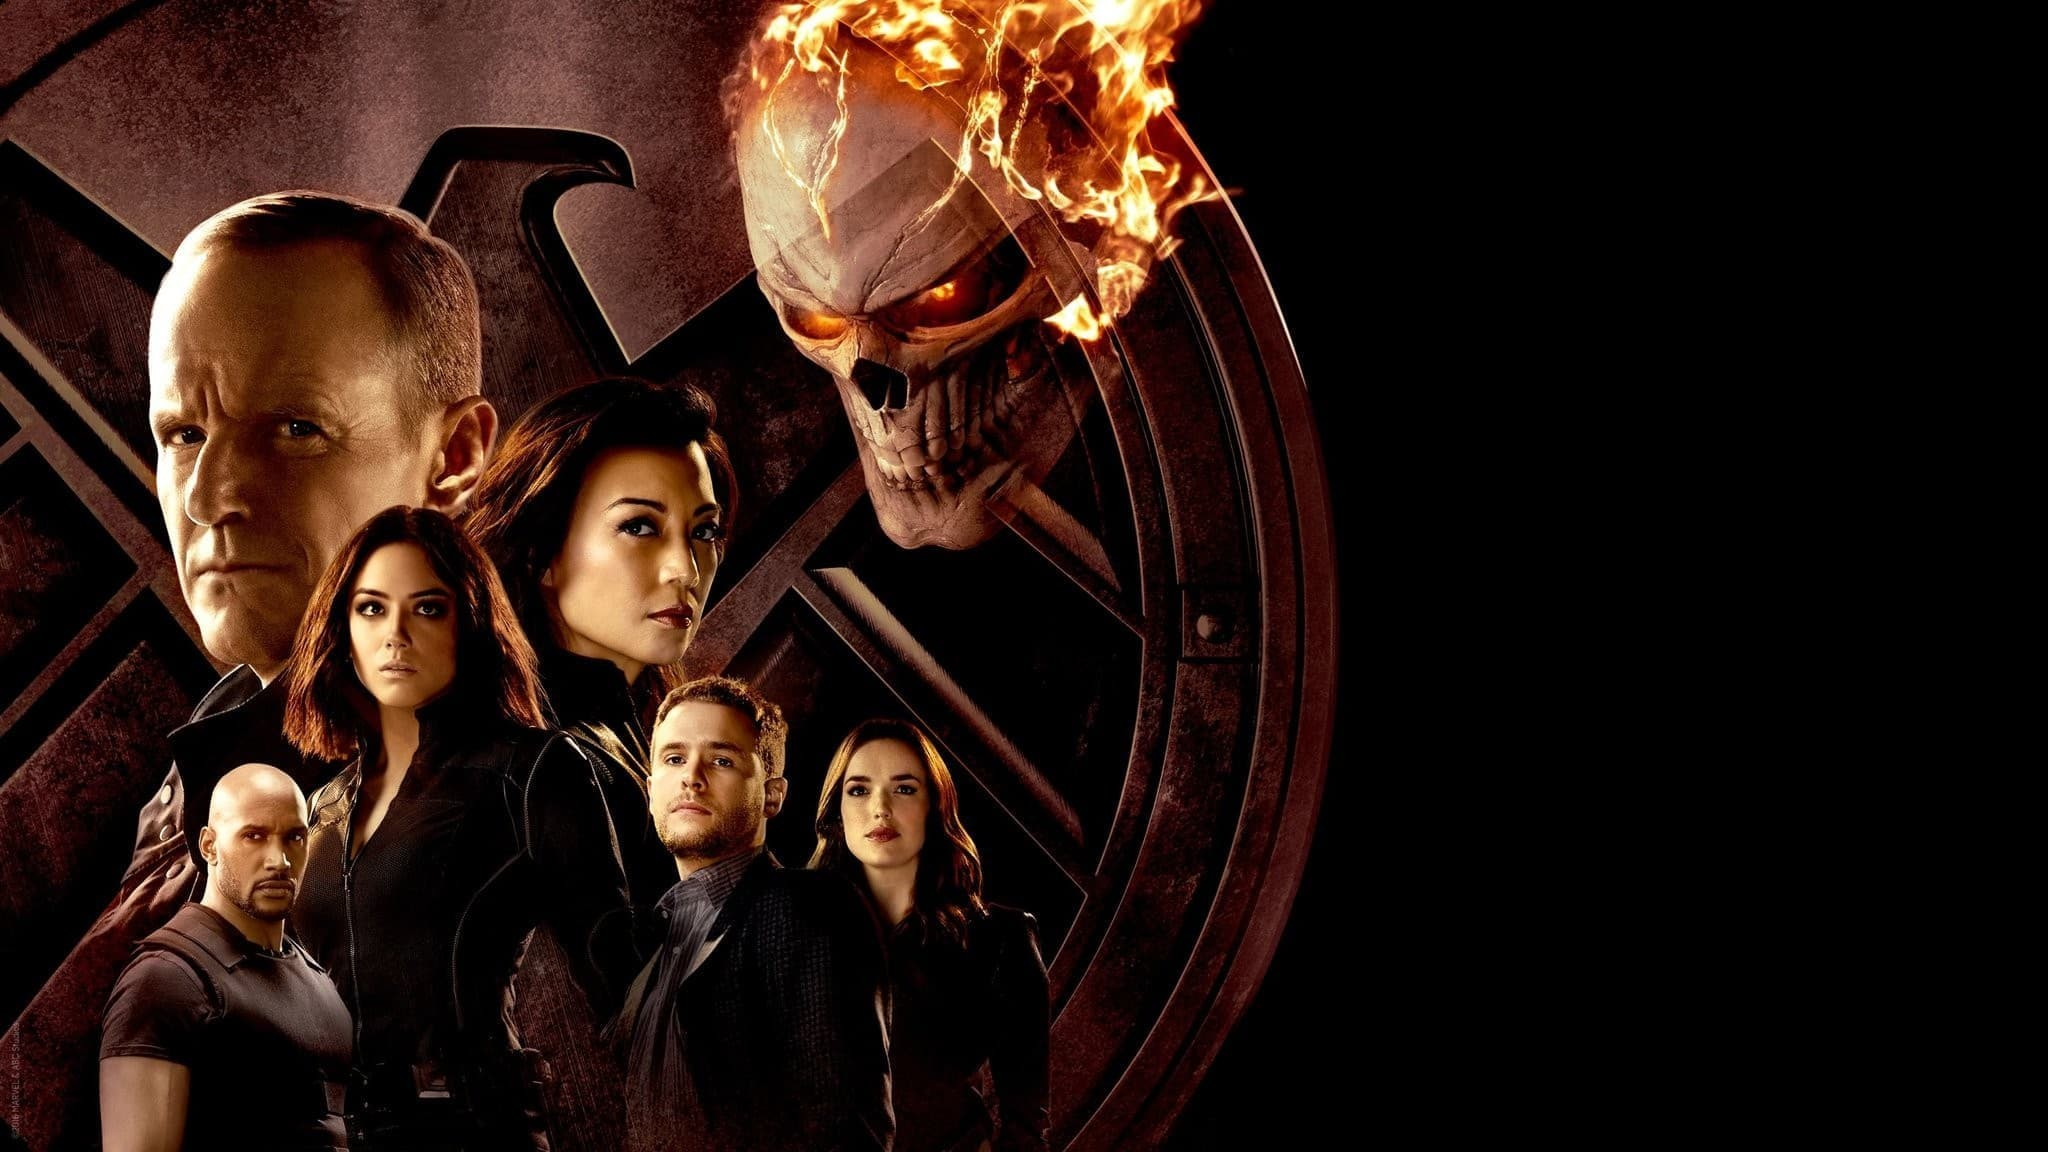 Agents of Shield Ghost Rider team and all characters